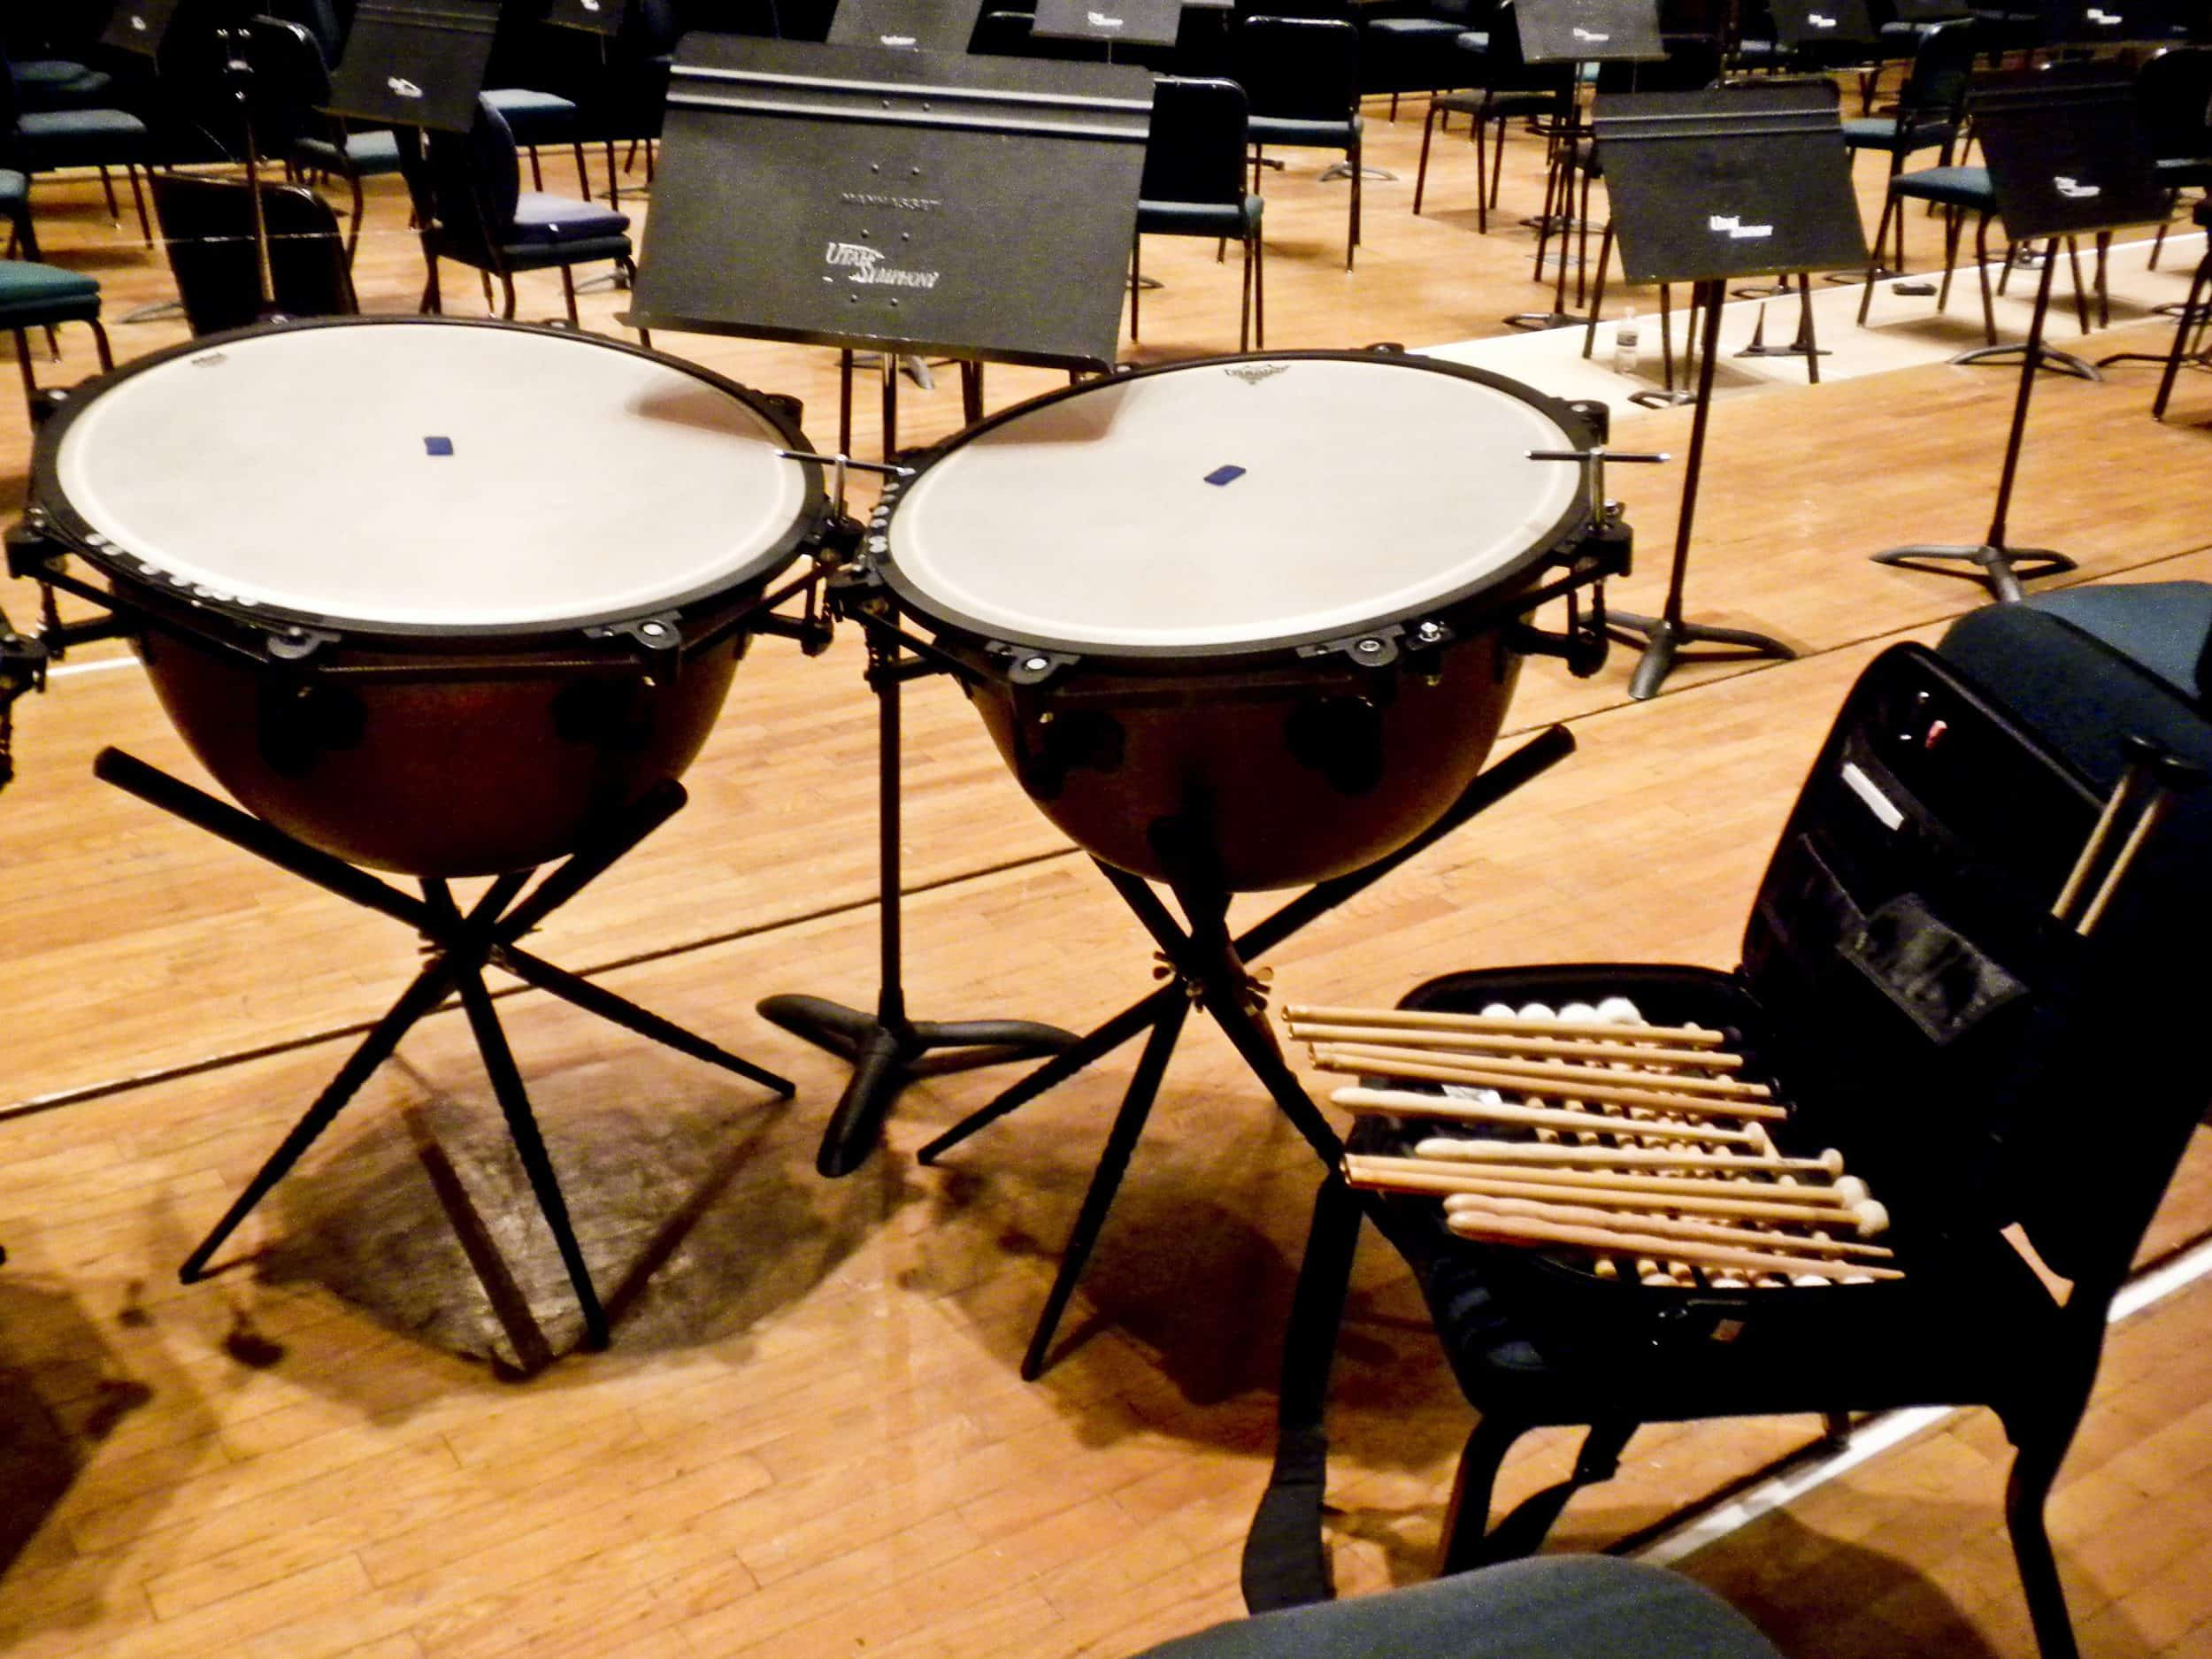 How to play a percussion instrument